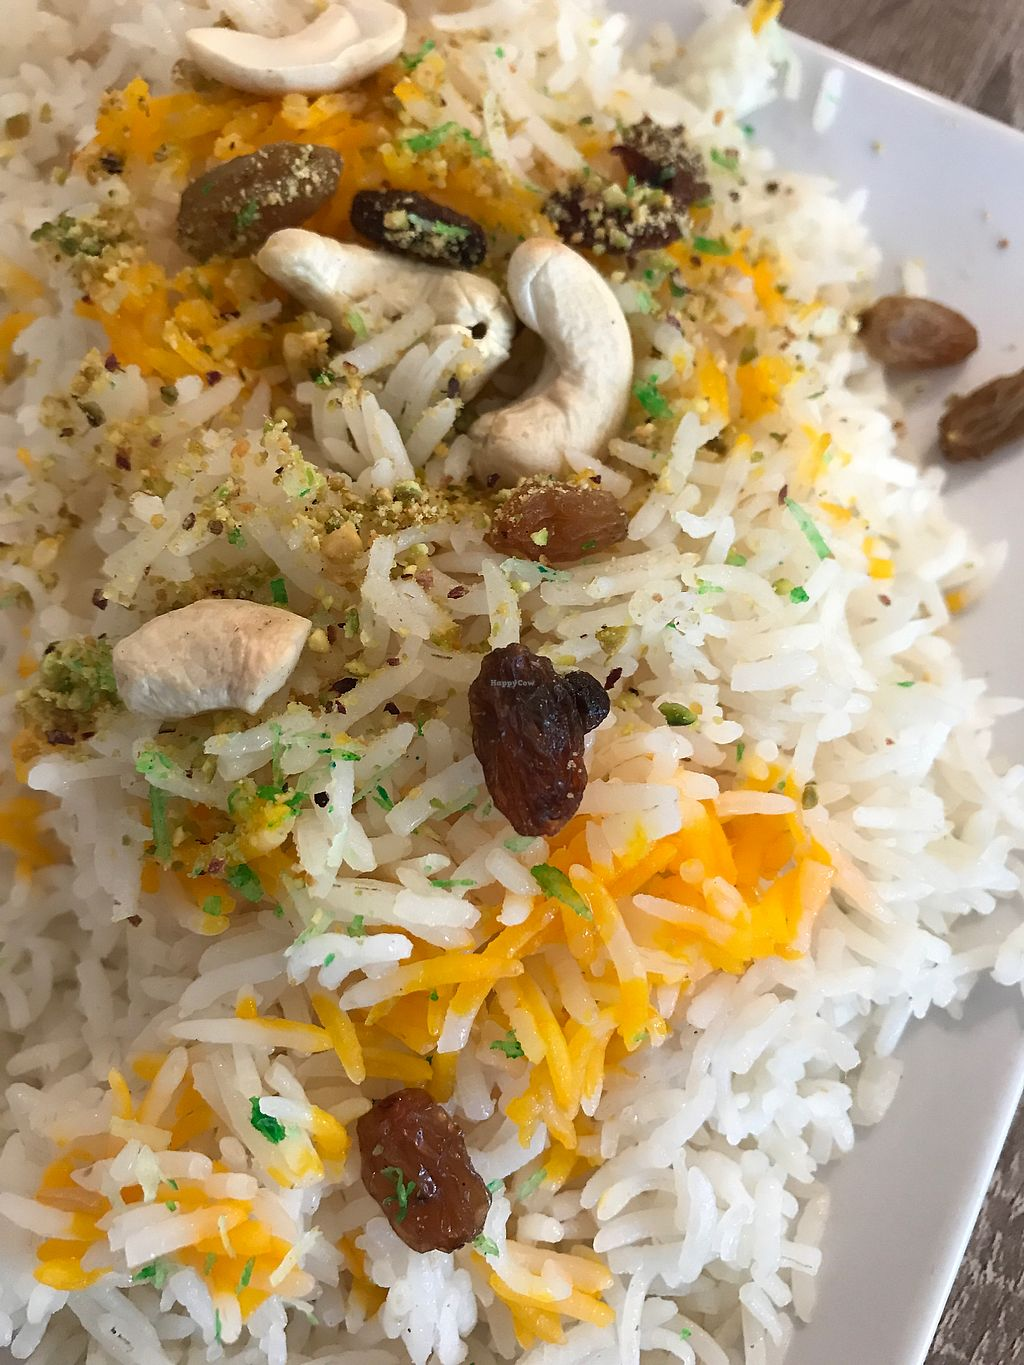 "Photo of Spice Garden  by <a href=""/members/profile/Maximillian"">Maximillian</a> <br/>Palau rice with cashew nuts and raisins <br/> August 7, 2017  - <a href='/contact/abuse/image/97637/290197'>Report</a>"